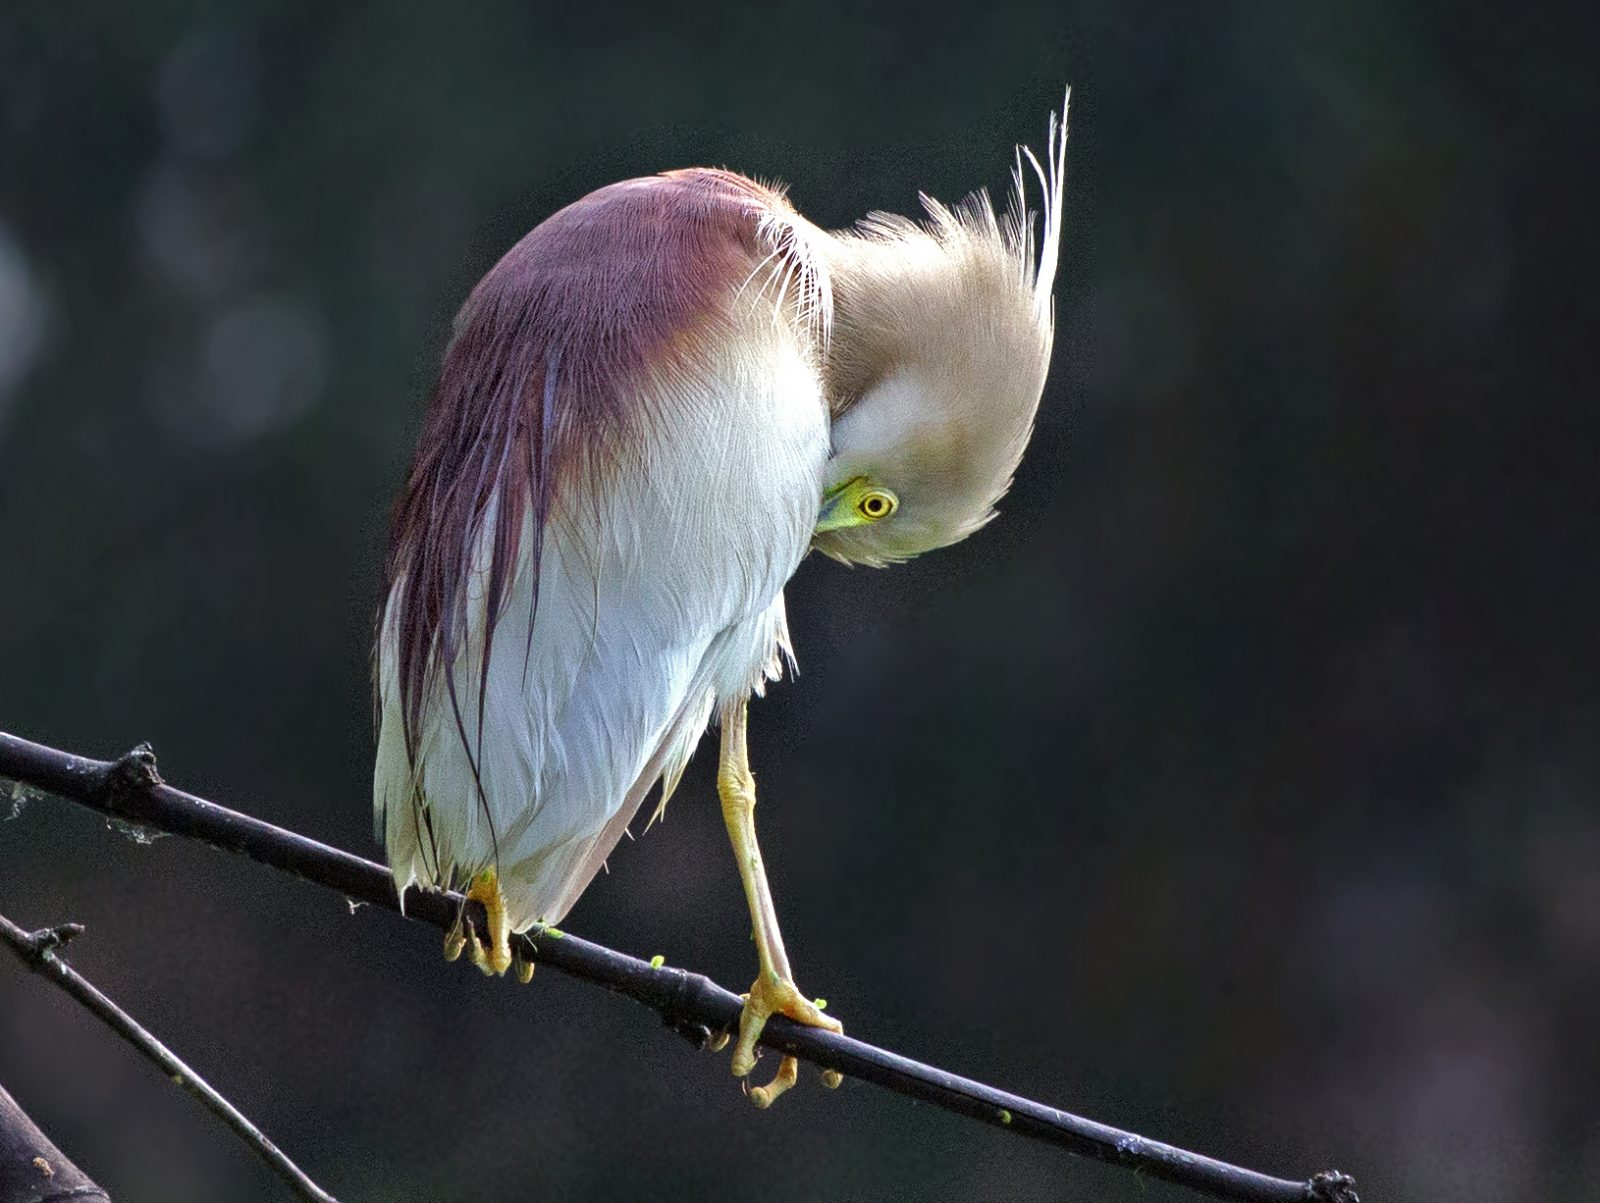 Indian Heron preening feathers